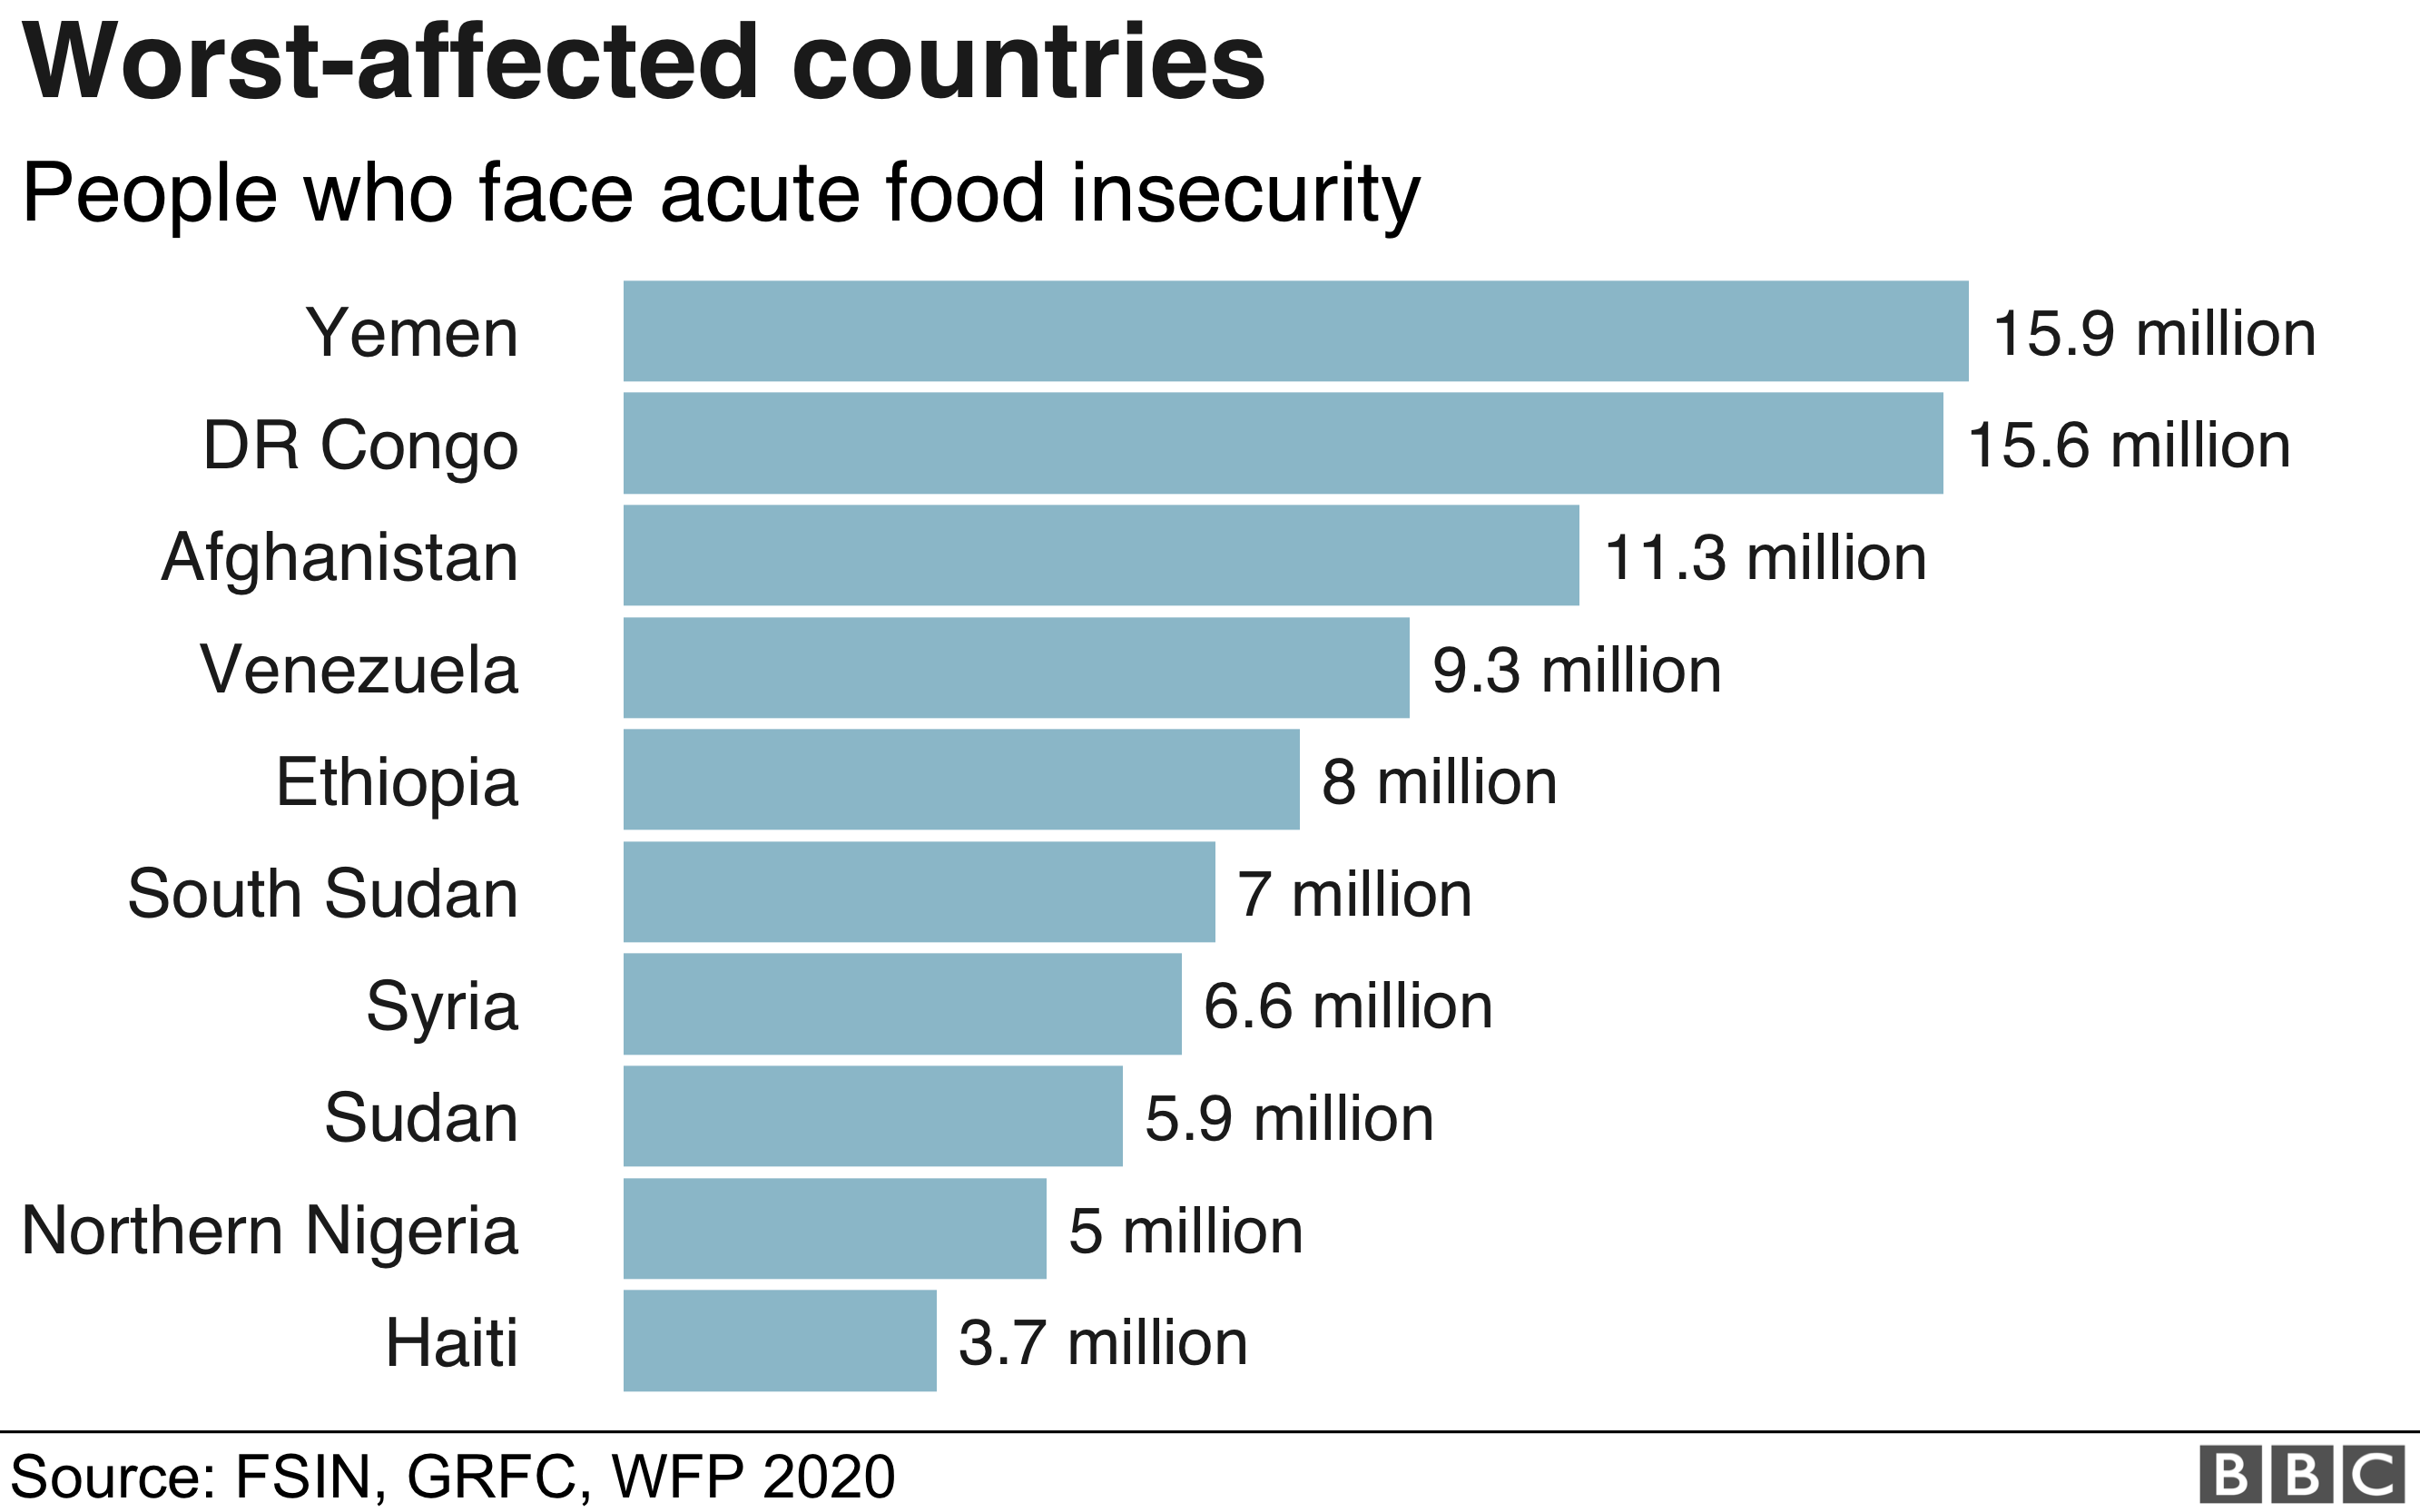 Chart showing worst-affected countries